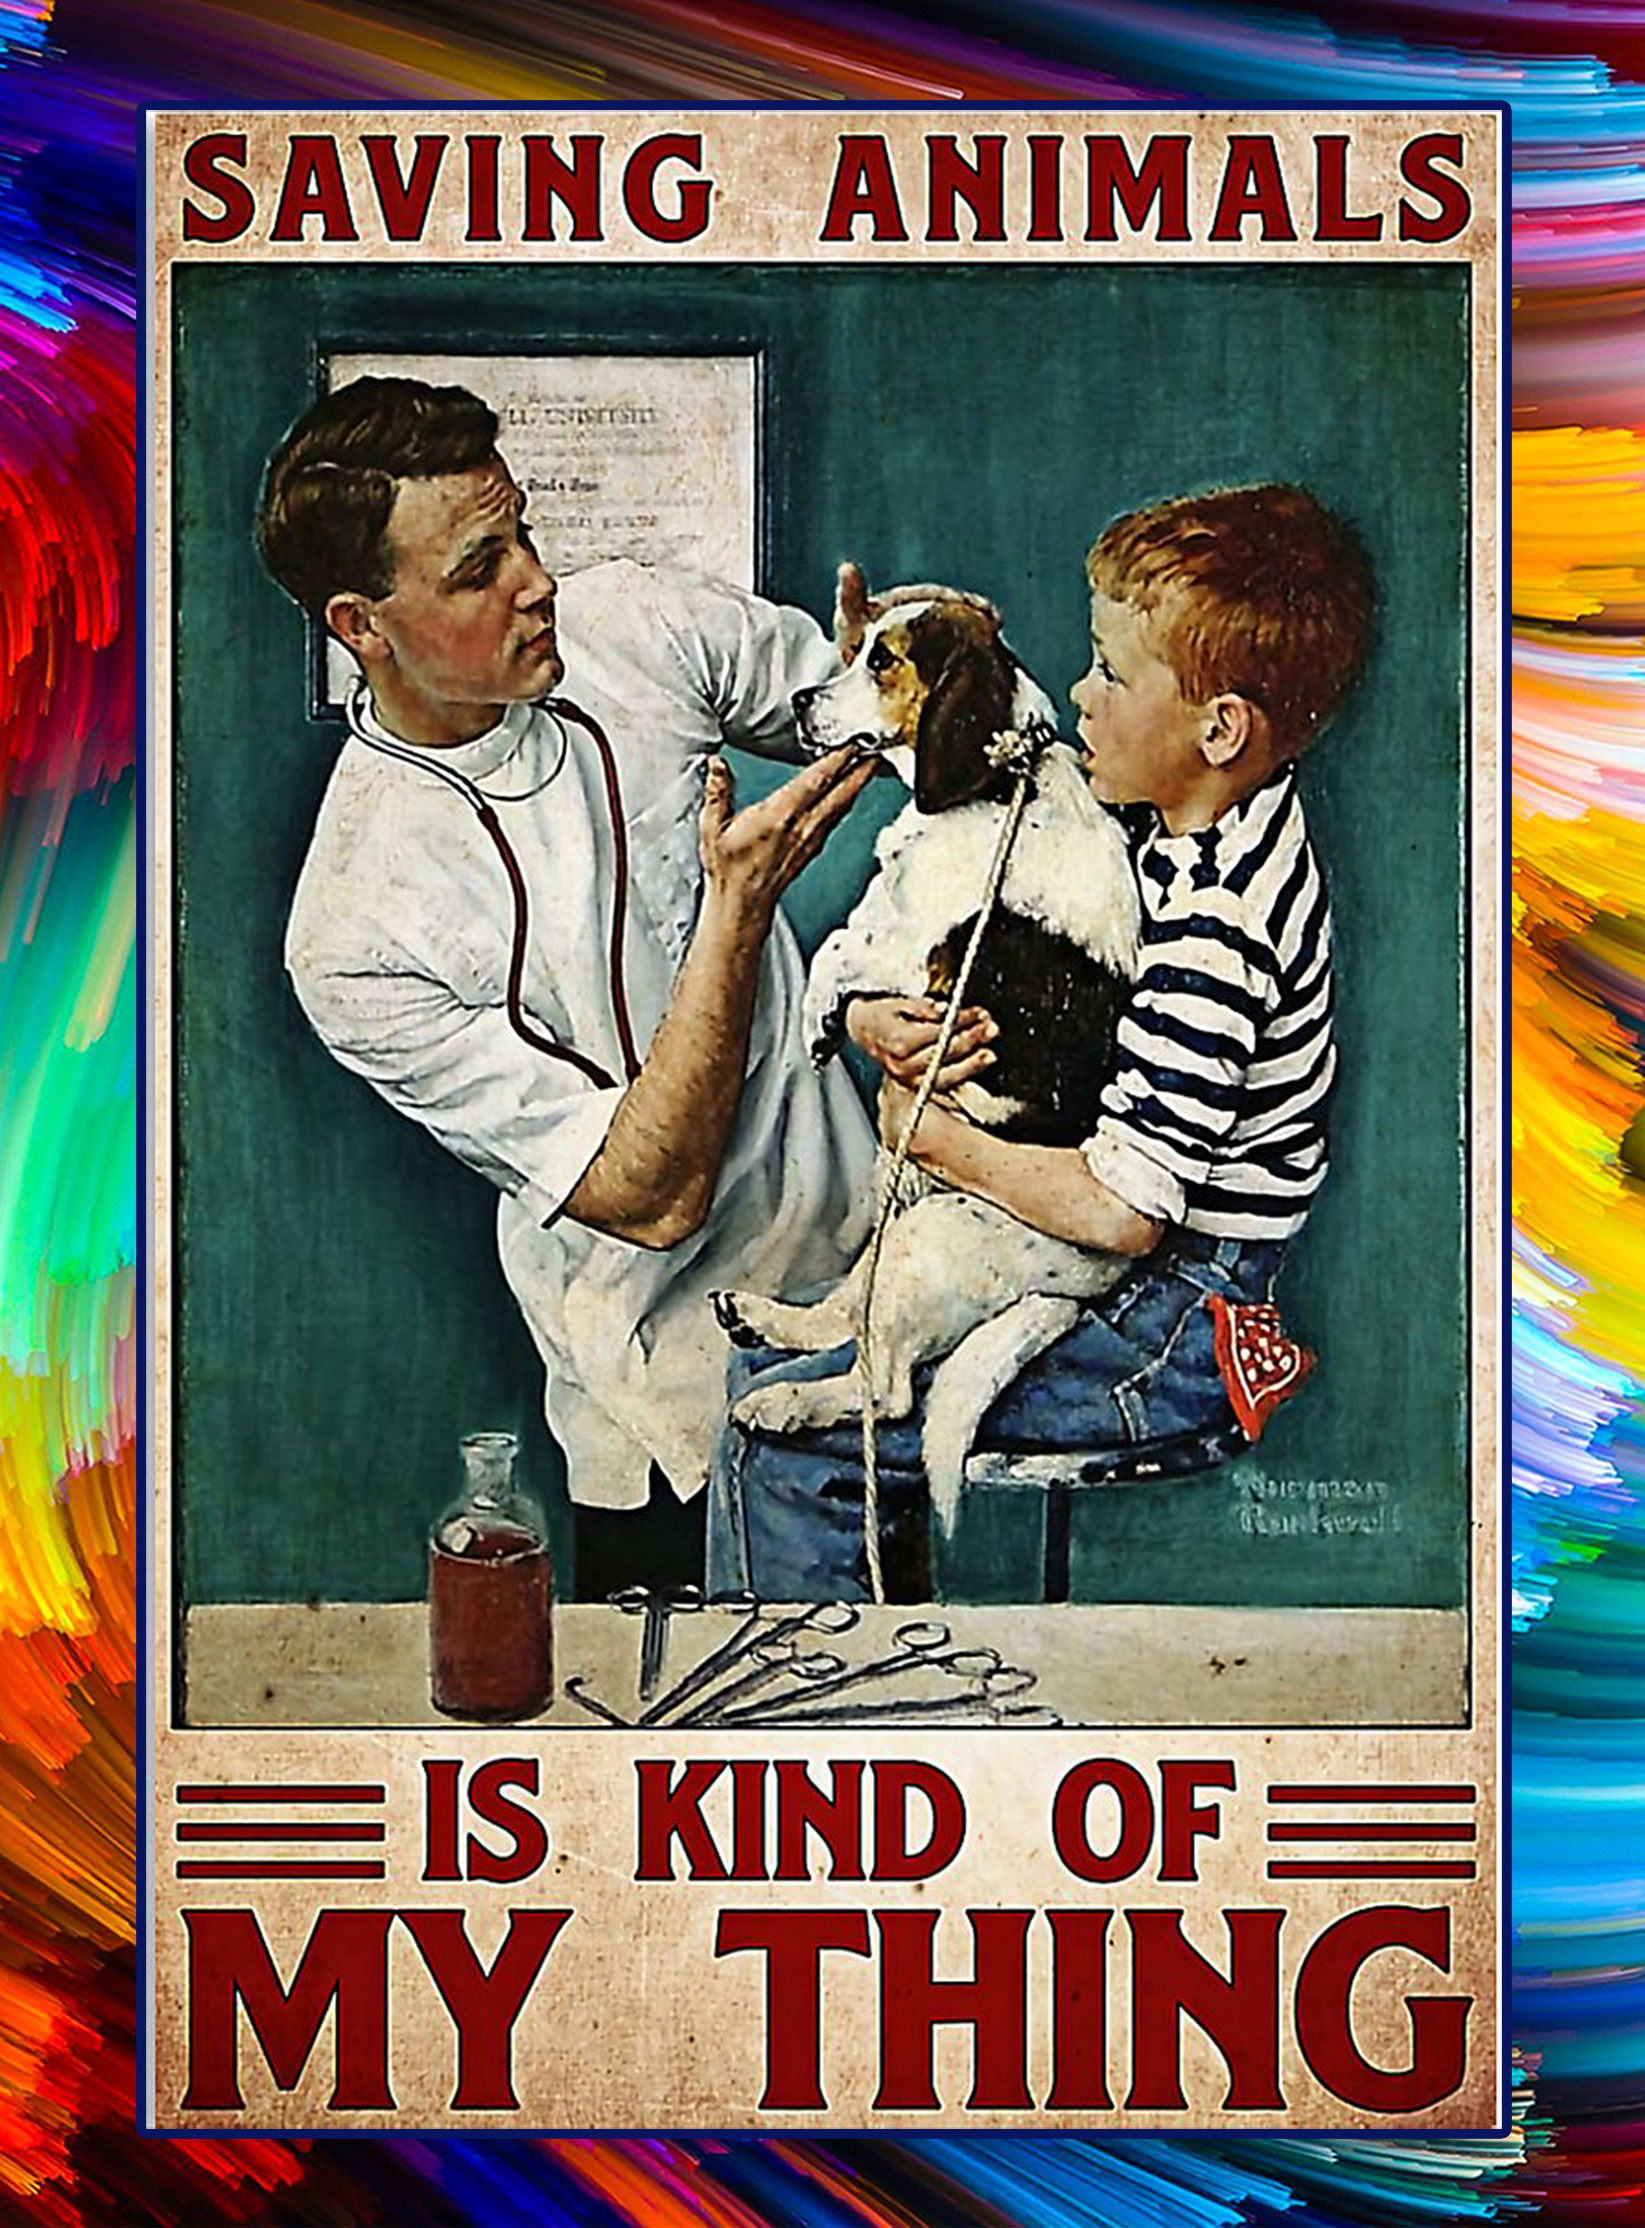 Saving animals is kind of my thing veterinarian poster - A2